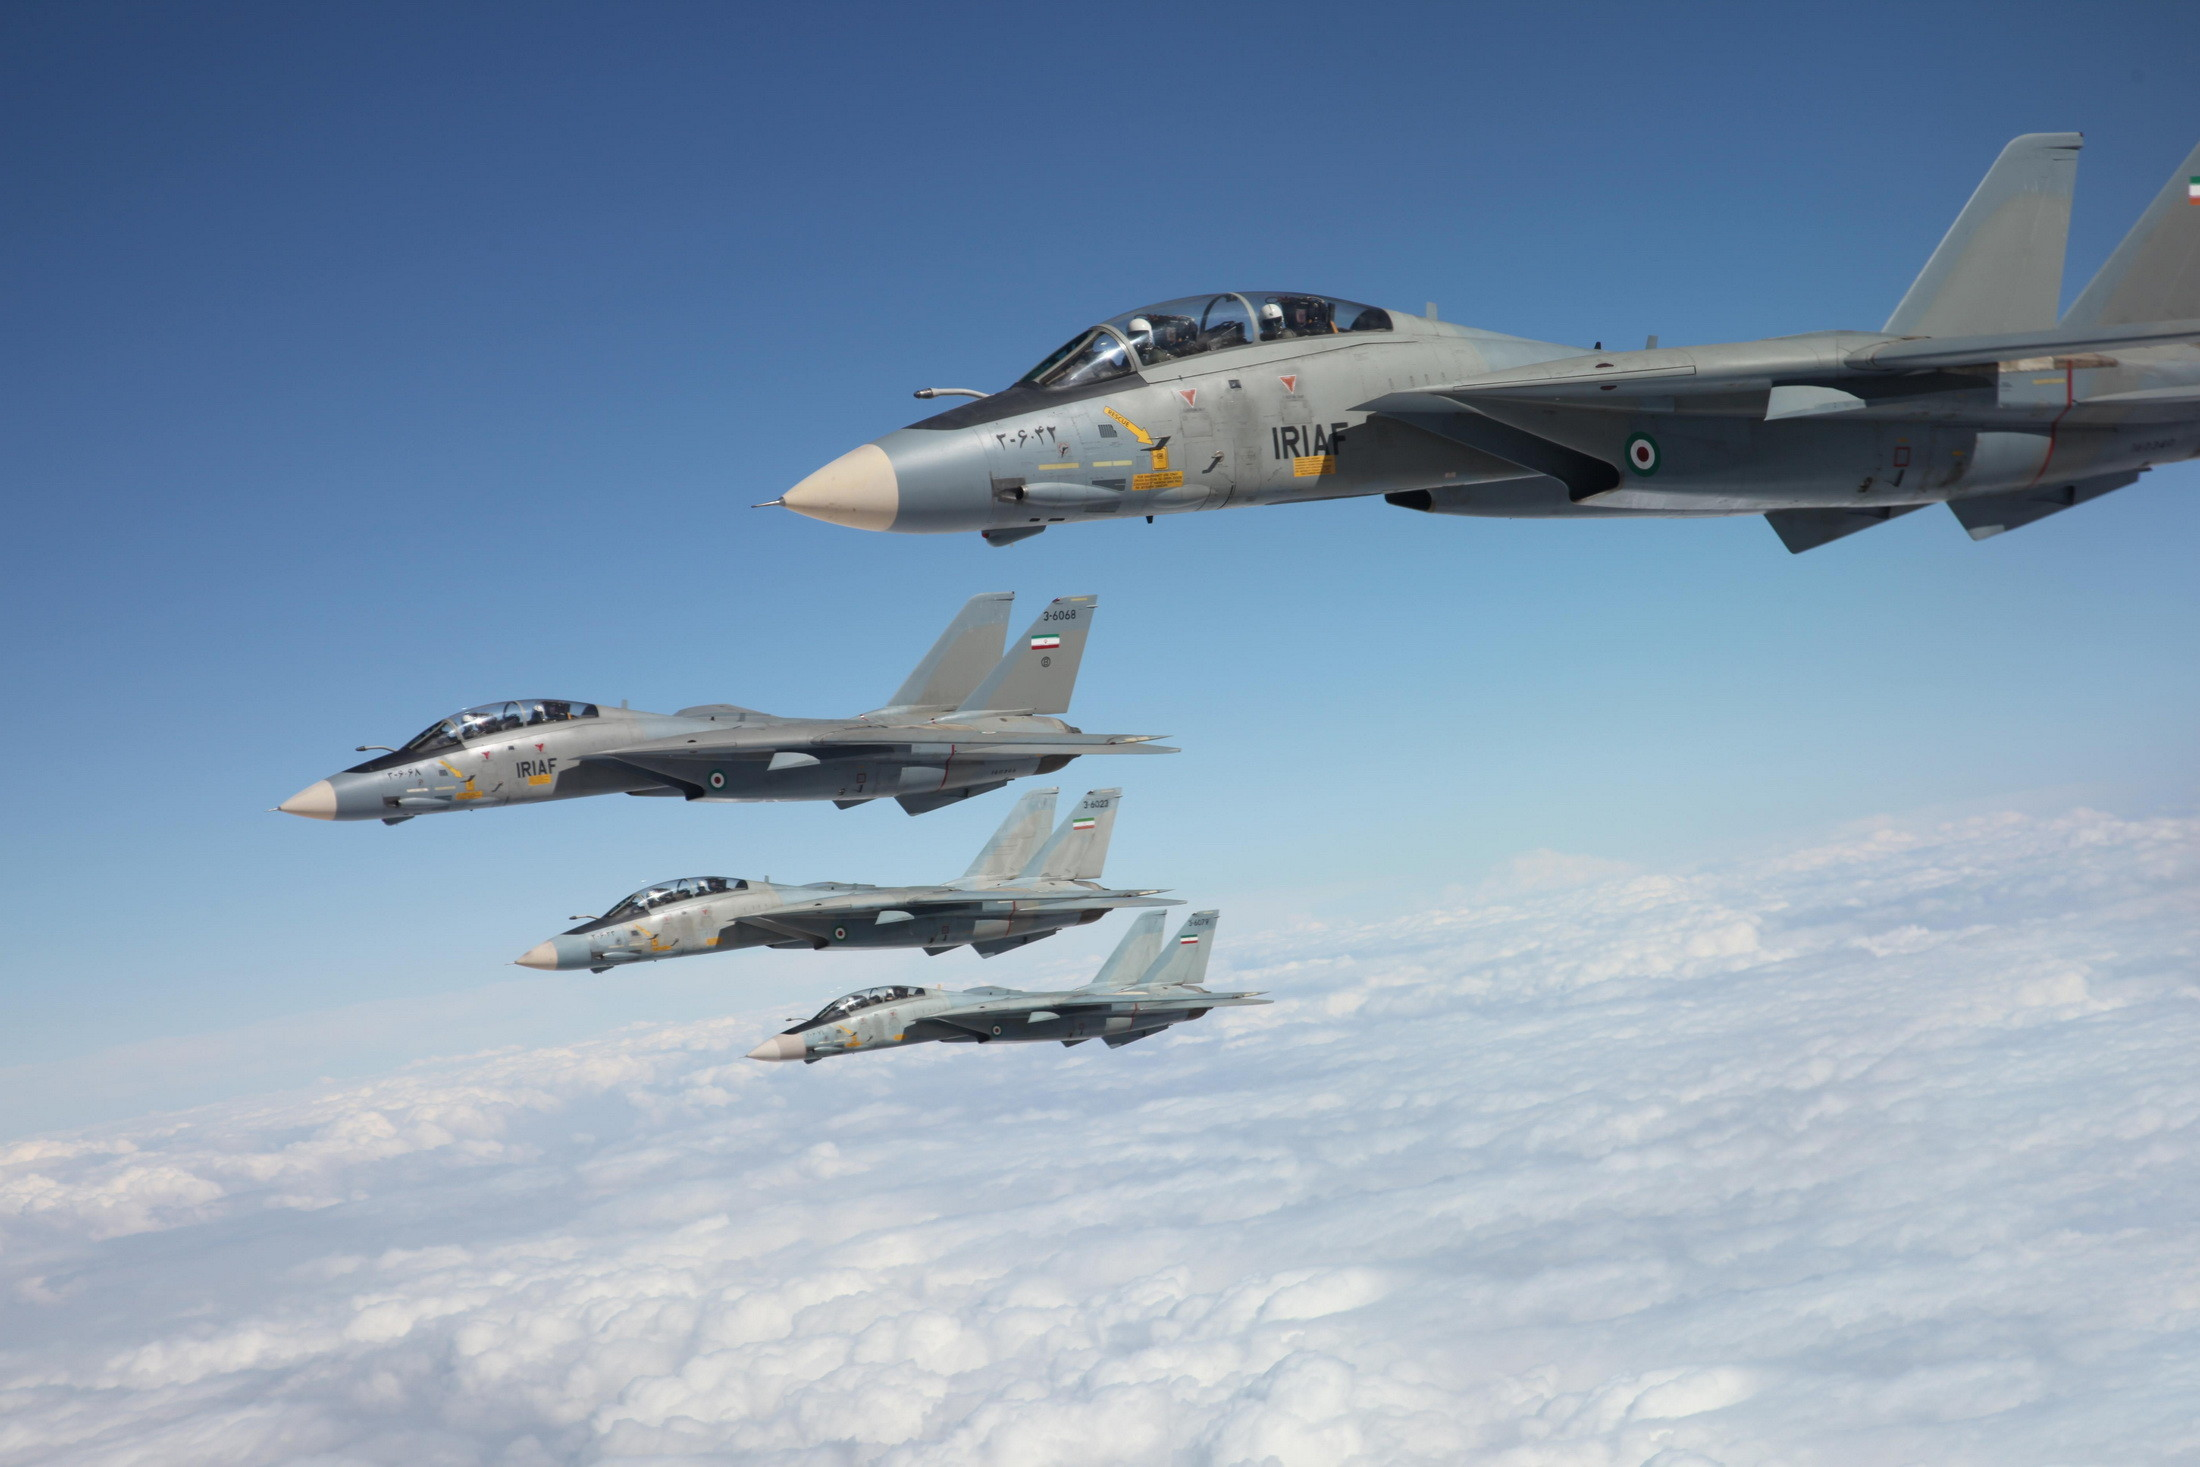 Res: 2200x1467, Iranian F-14 Tomcat crashed last year mistakenly downed by Iranian Air  Defense?